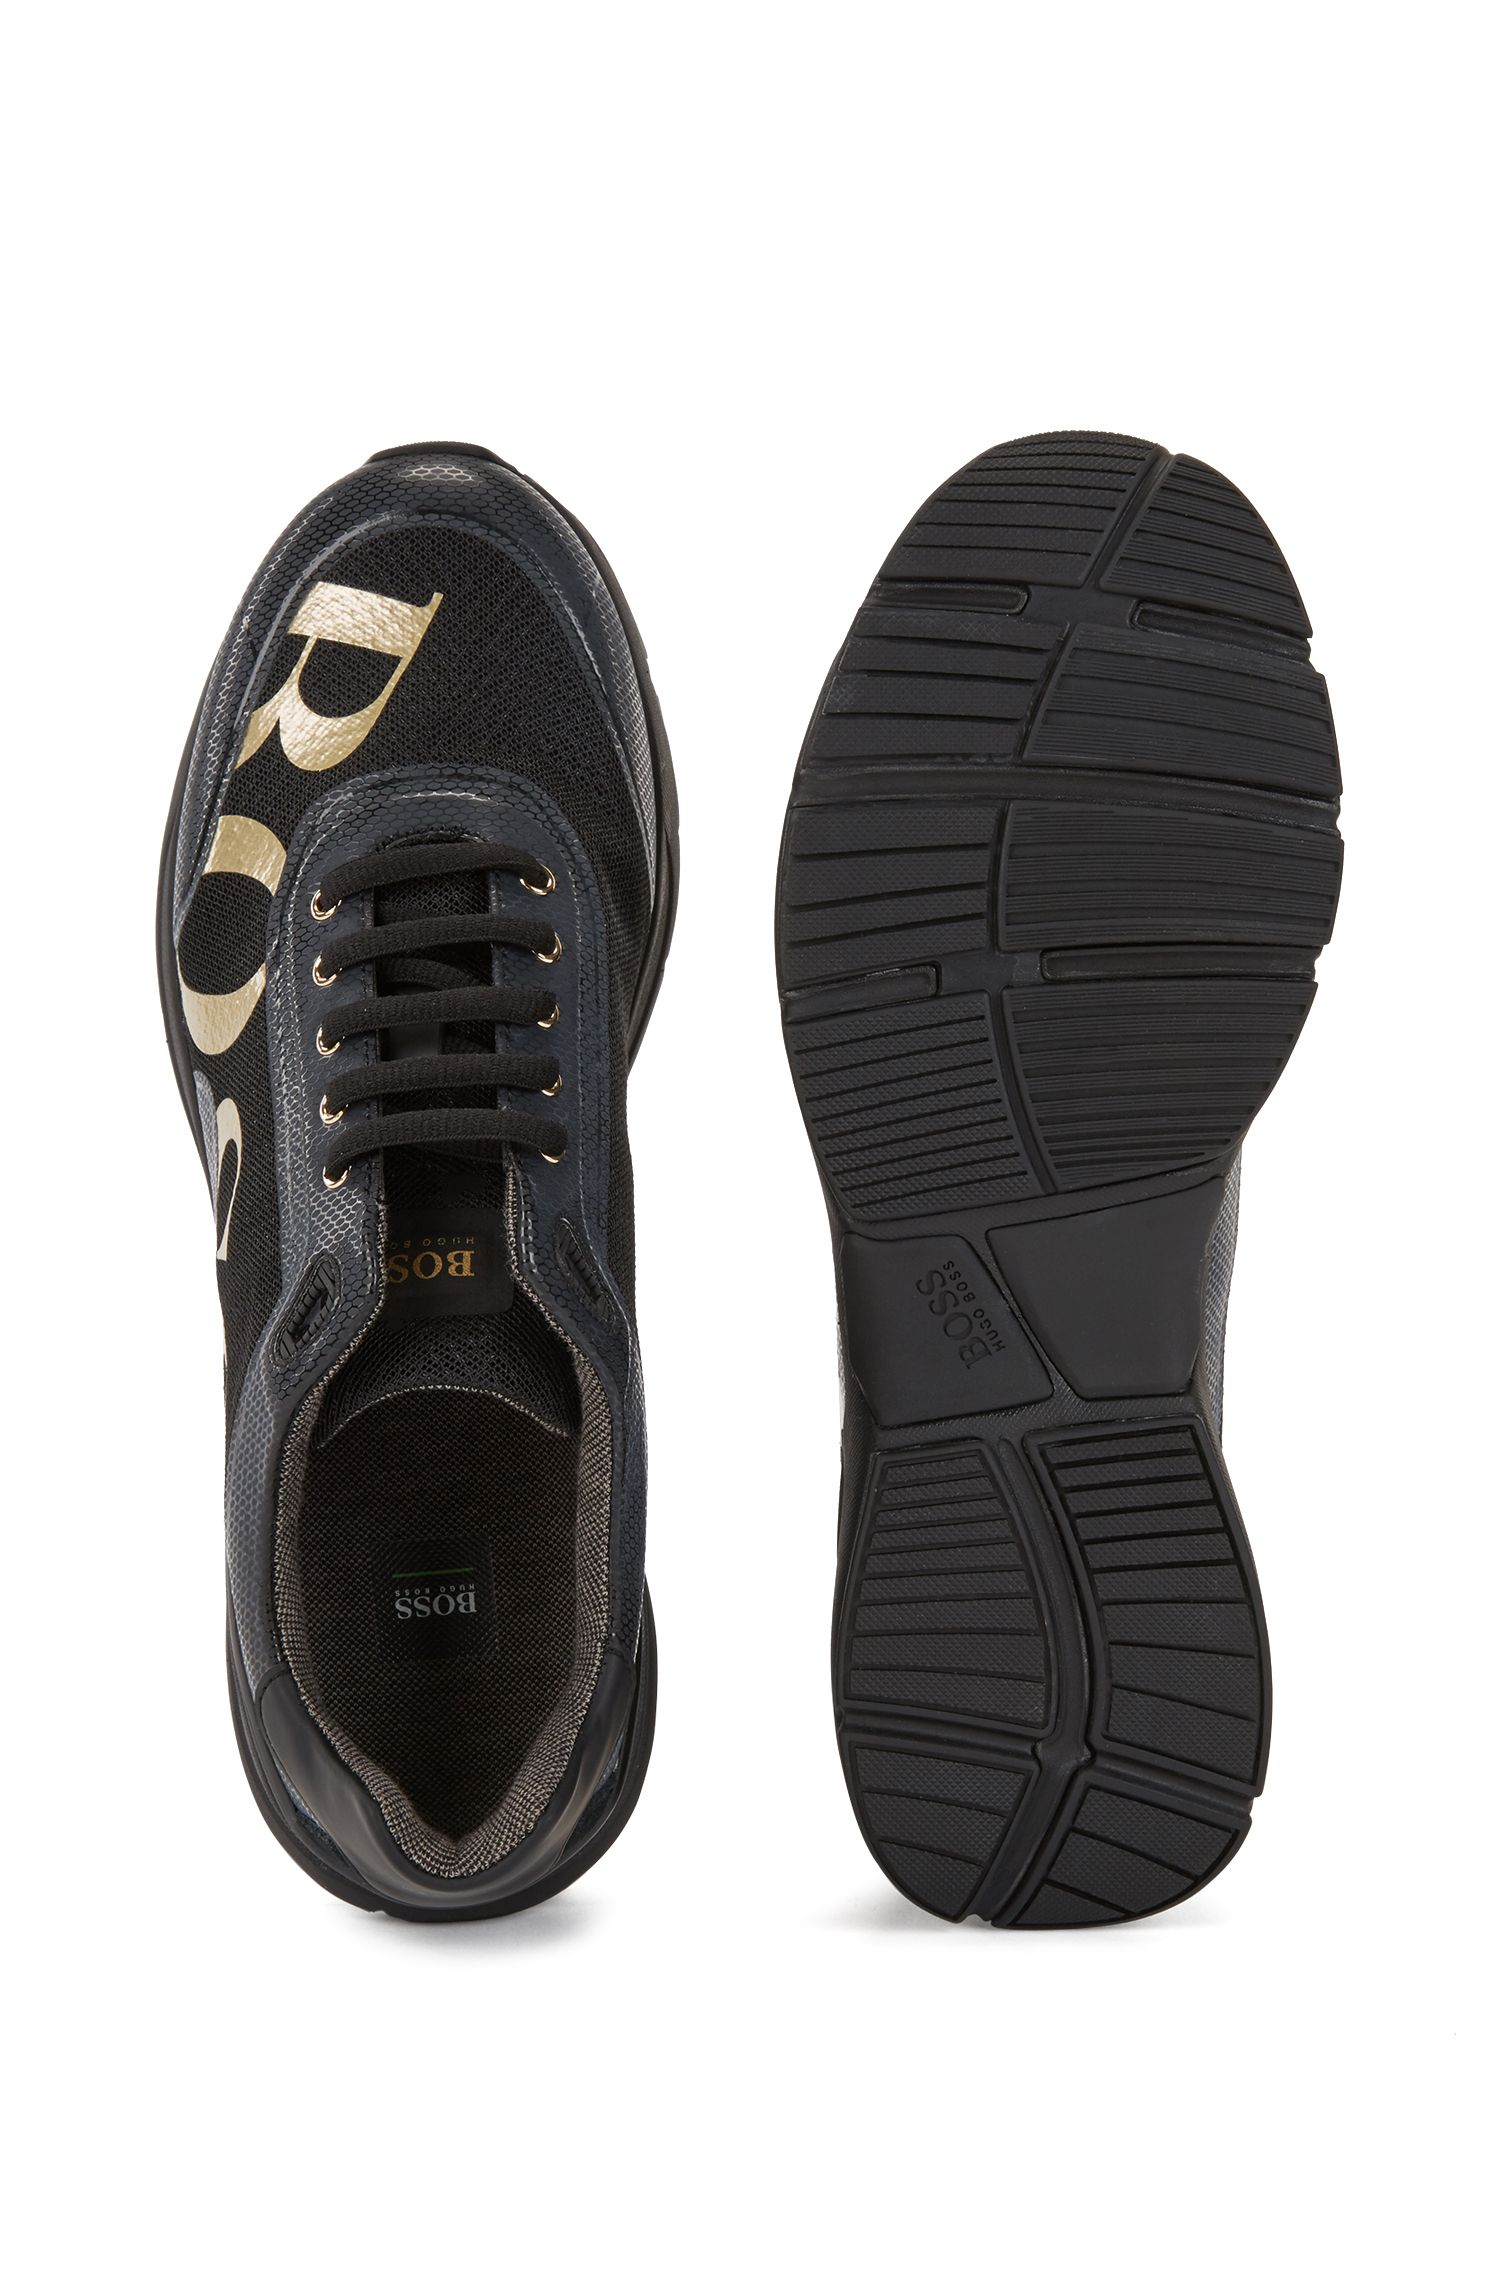 Running-inspired trainers with bamboo-charcoal lining, Black